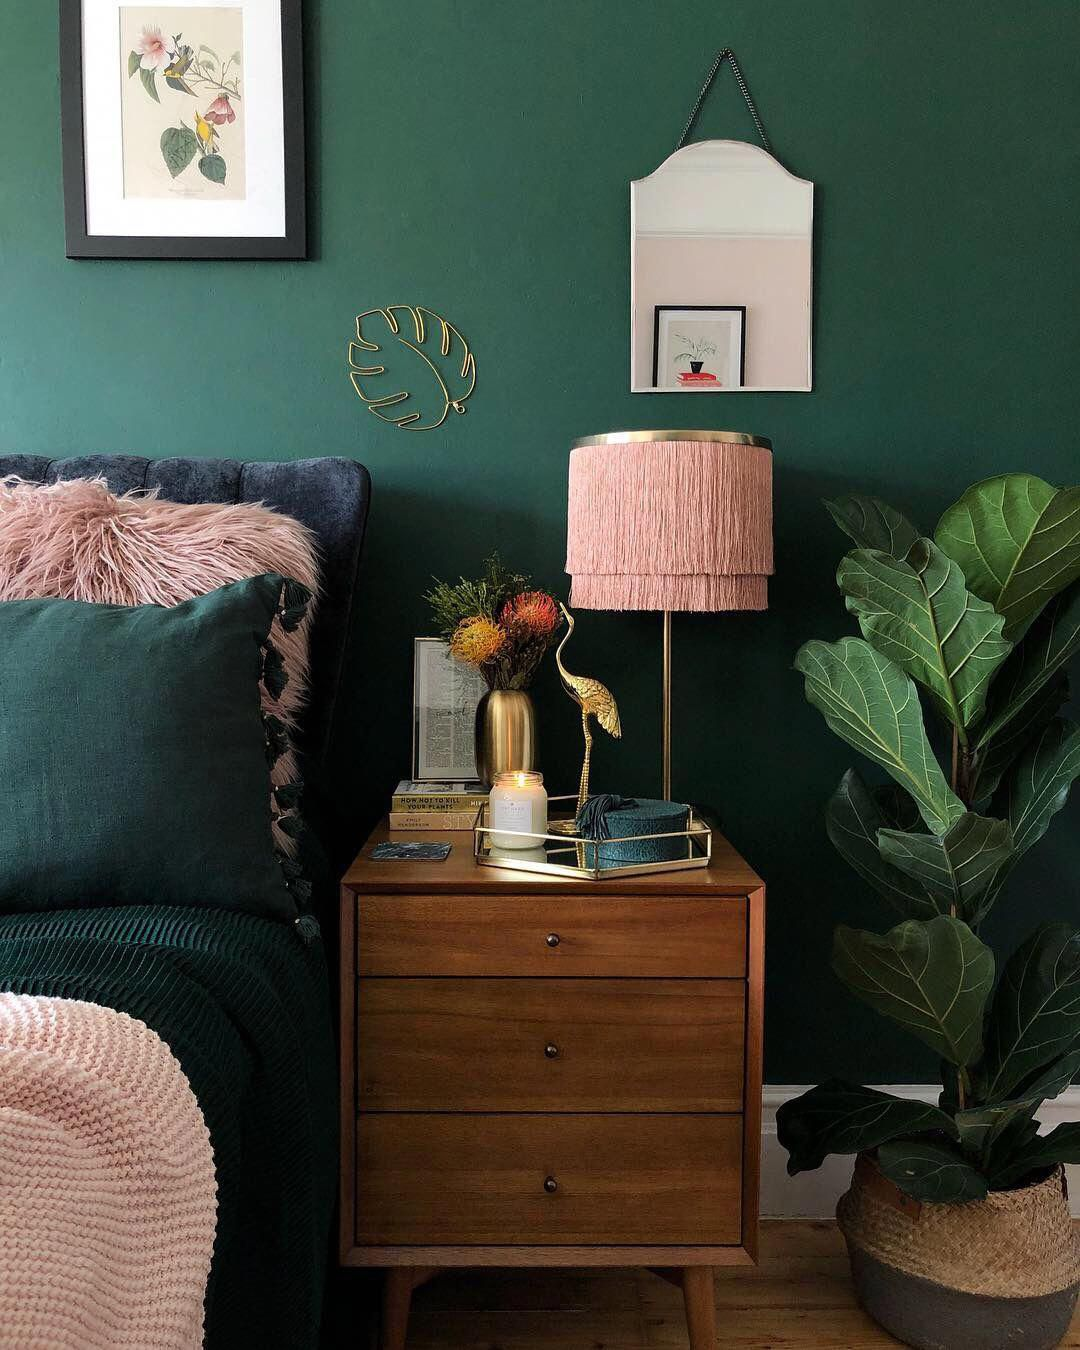 Pink and Green Bedroom Inspiration   20 Photos That Will Prove Decorating with Pink and Green is the Next Big Thing